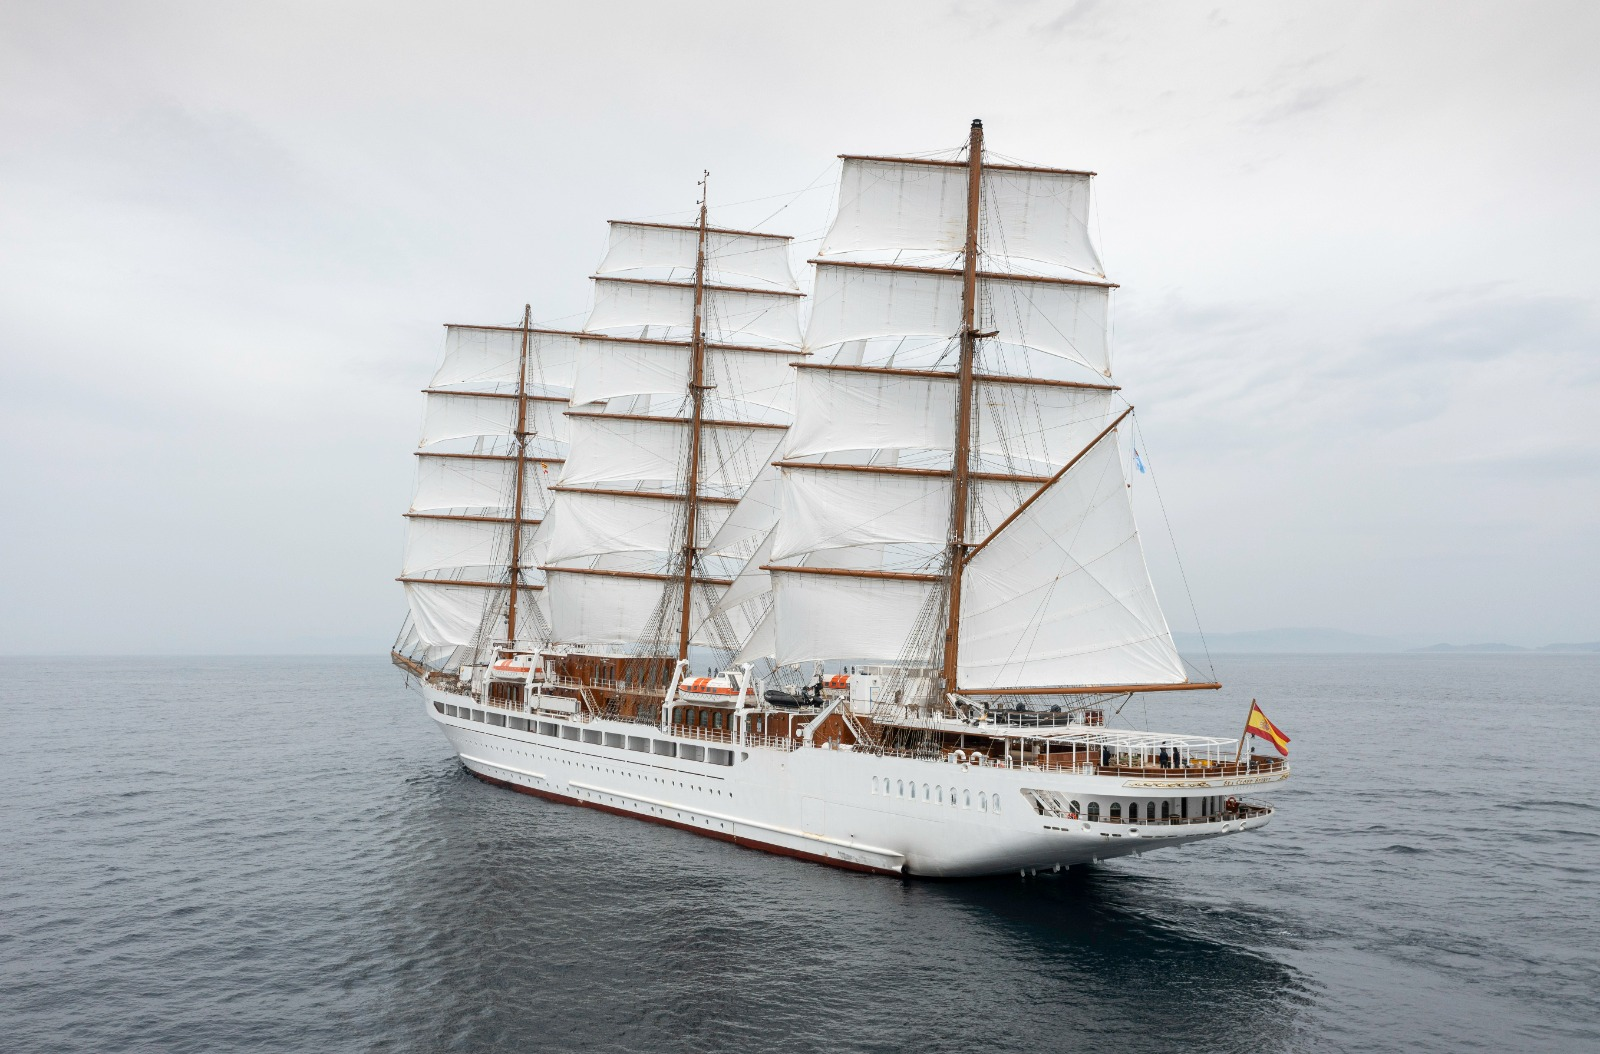 METALSHIPS & DOCKS SHIPYARD OF THE RODMAN GROUP DELIVERS THE SHIP SEA CLOUD SPIRIT INTENDED FOR PREMIUM TOURISM